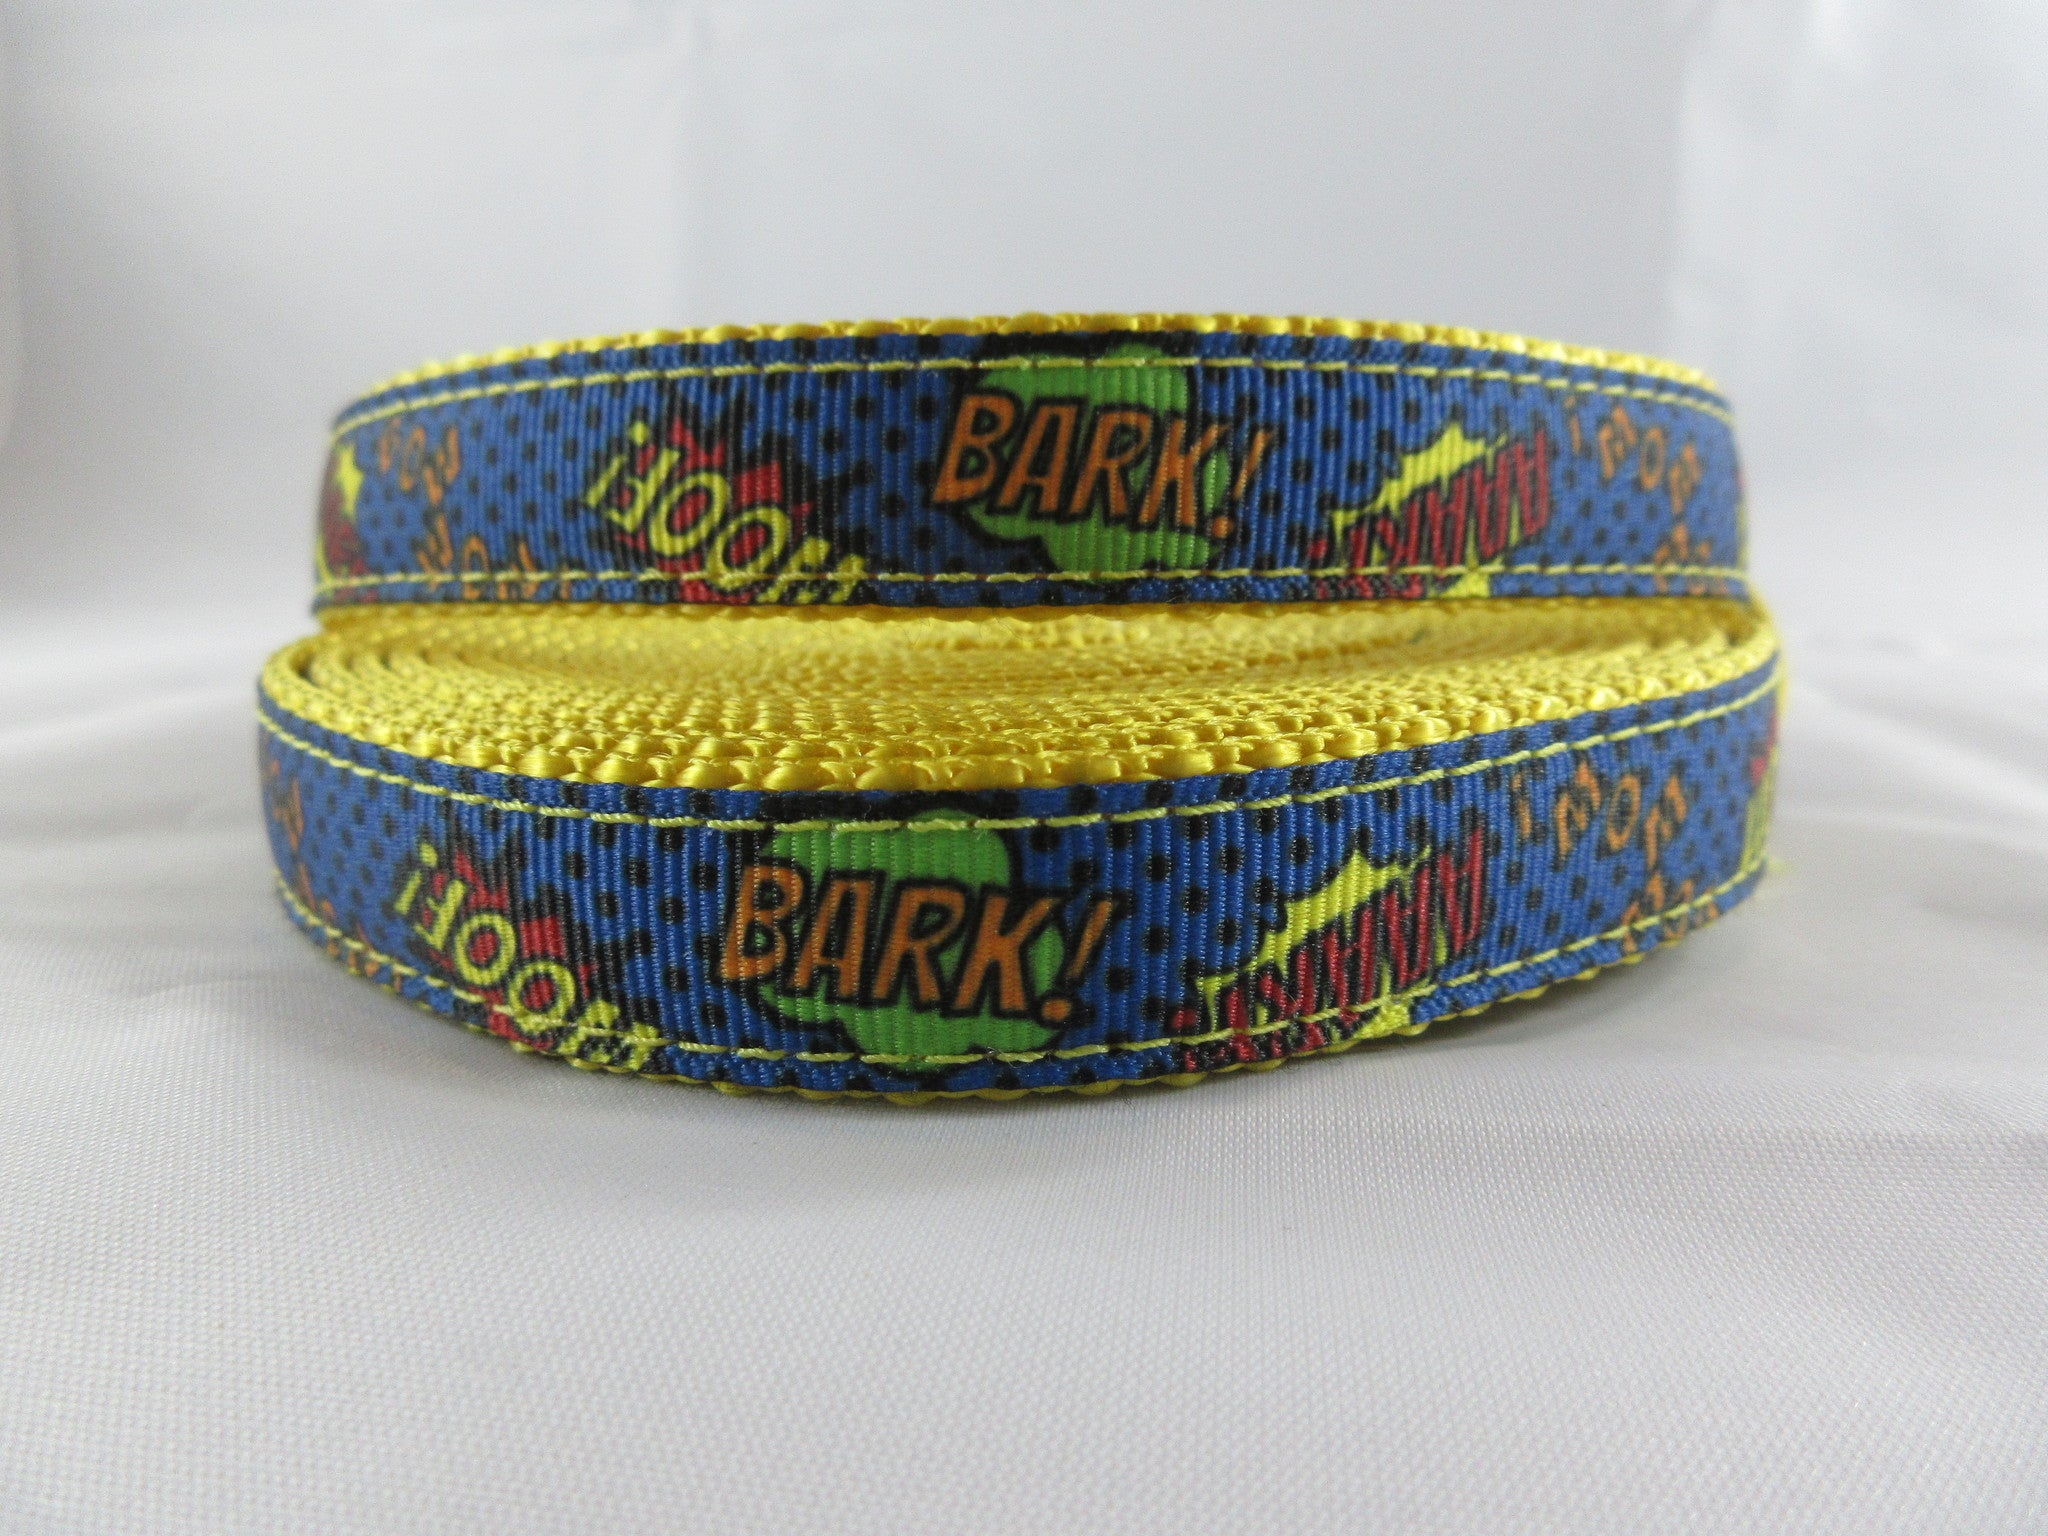 "3/4"" Super Dog Dog Collar - Penny and Hoover's Pig Pen"